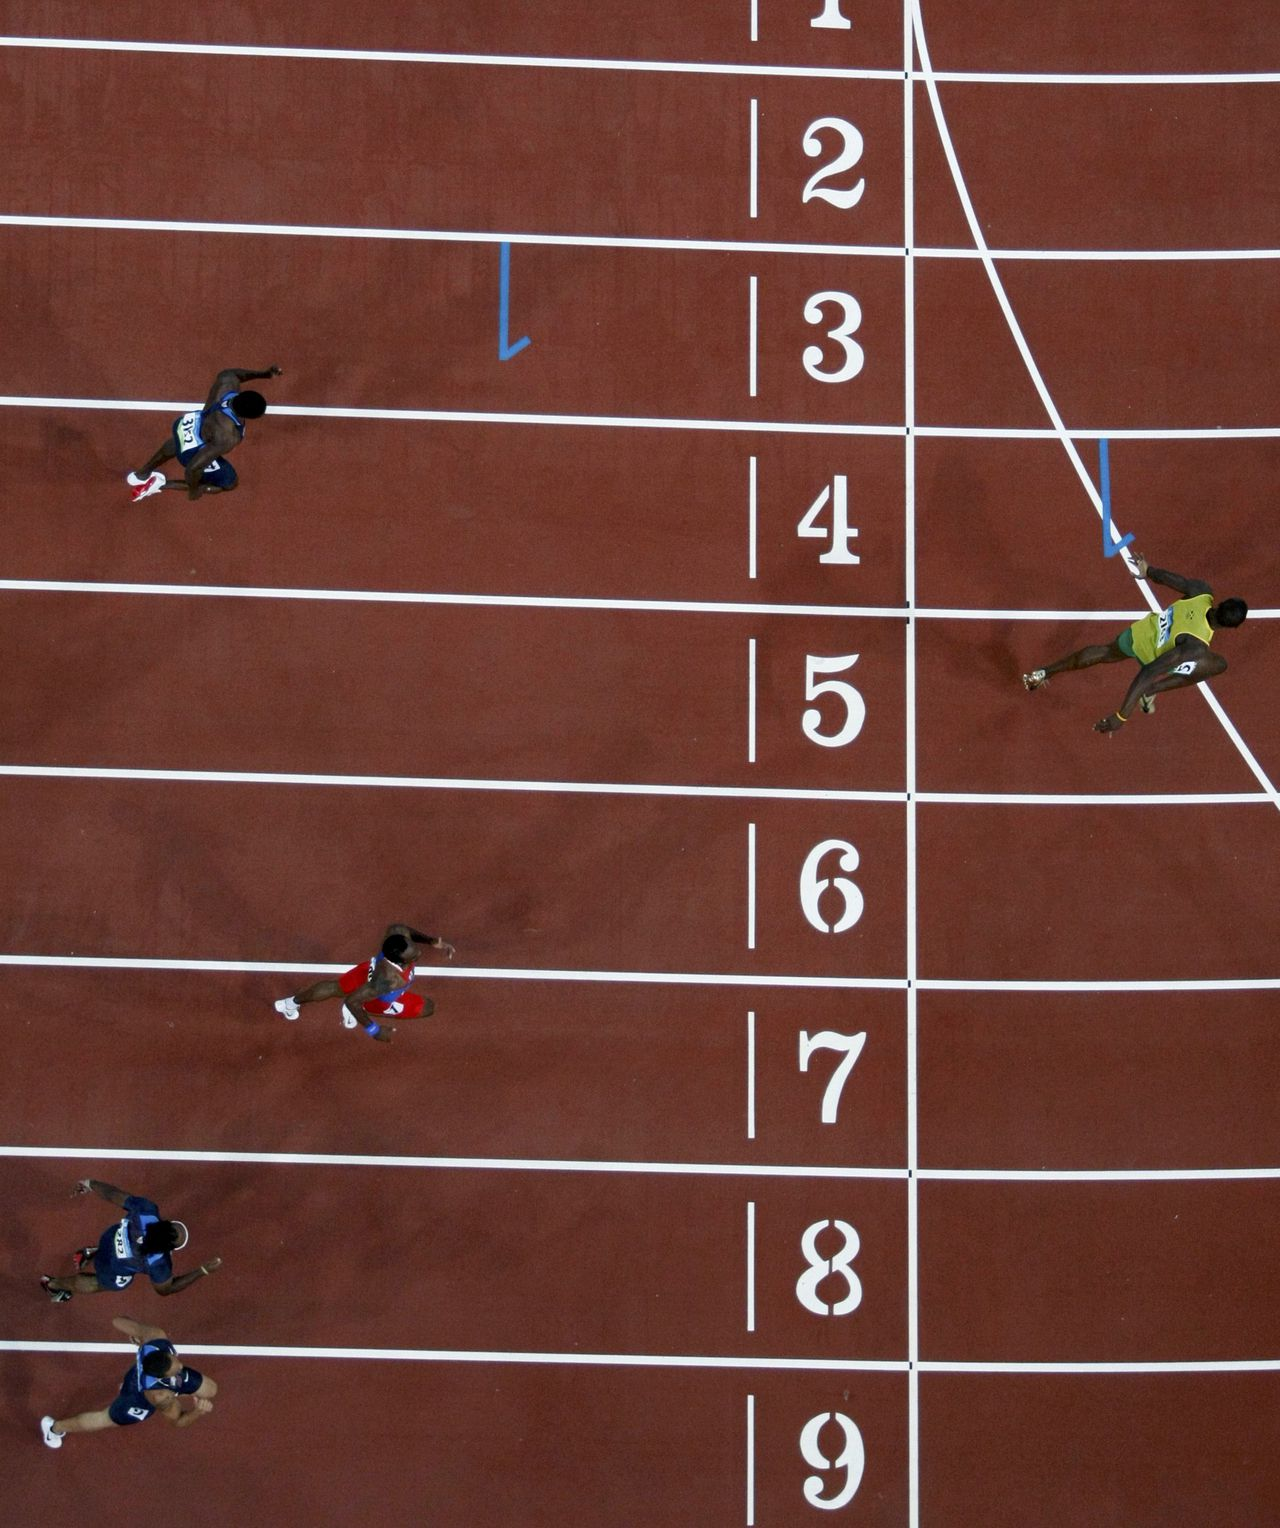 Usain Bolt komt over de finish in een nieuw wereldrecord: 19,30 seconden. Foto Reuters Usain Bolt of Jamaica (5th lane) crosses the finish line to win the men's 200m final of the athletics competition in the National Stadium at the Beijing 2008 Olympic Games August 20, 2008. Bolt set a new world record with a timing of 19.30 seconds. REUTERS/Kim Kyung-Hoon (CHINA)